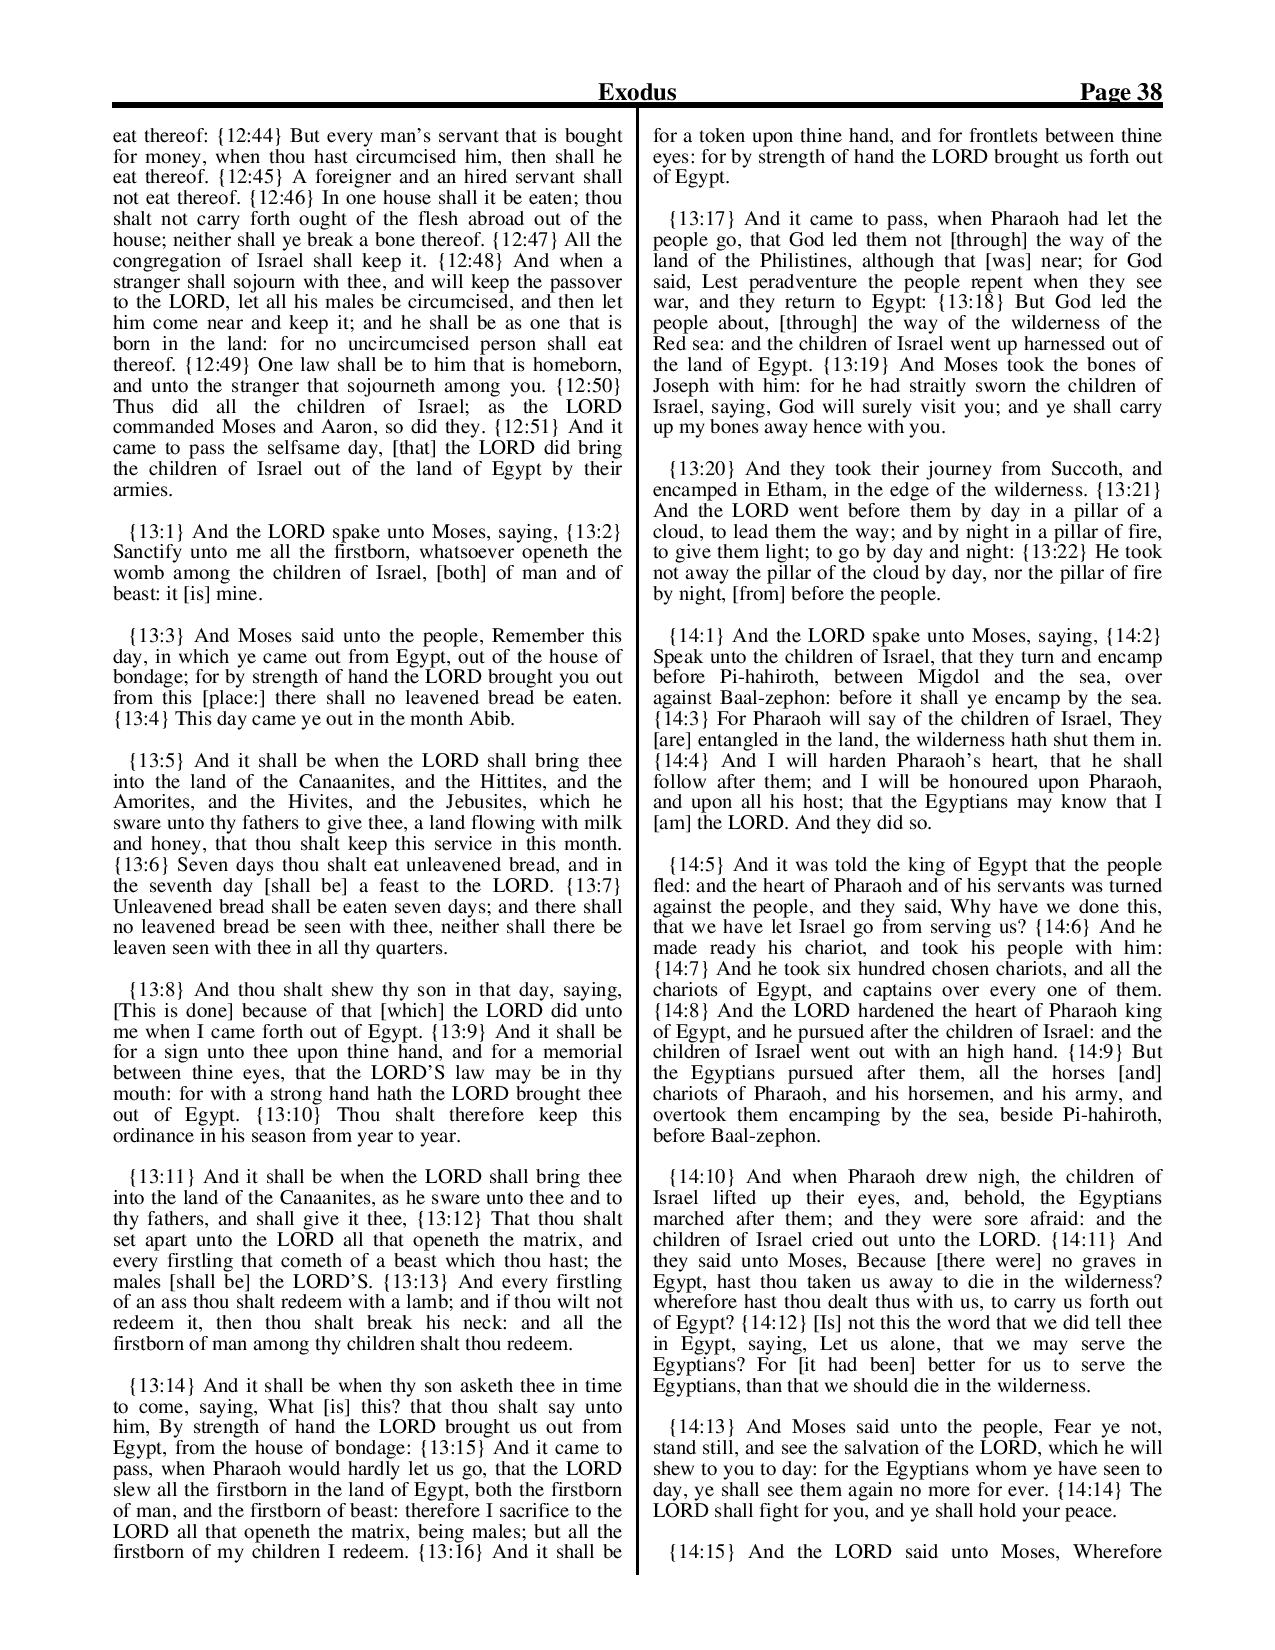 King-James-Bible-KJV-Bible-PDF-page-059